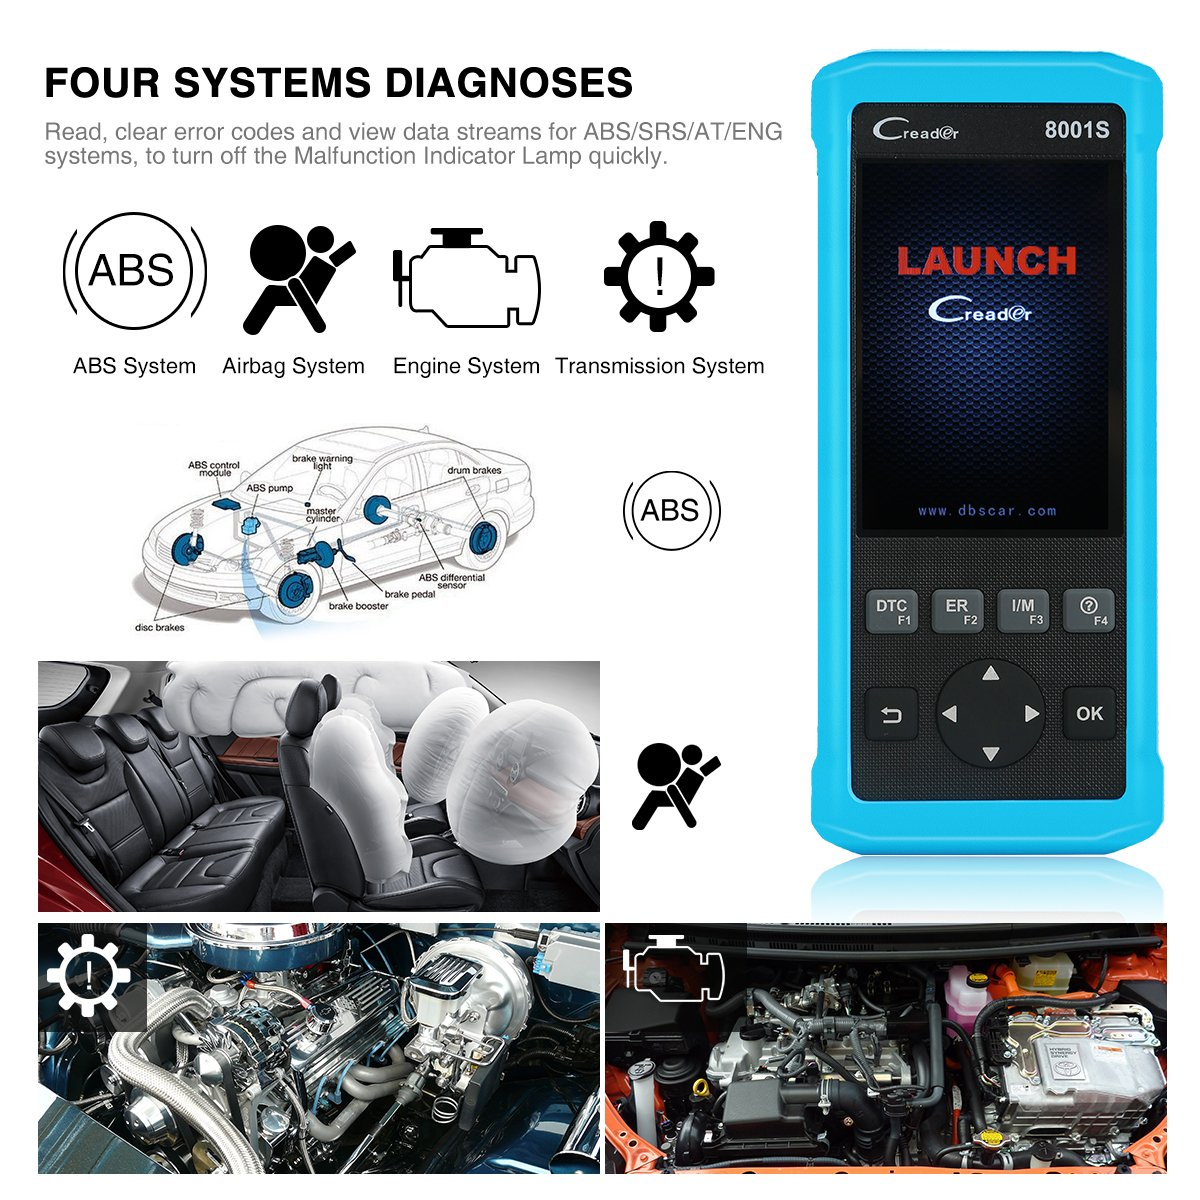 LAUNCH CR8001S Code Reader Oil/EPB/SAS/BMS Reset OBD2 Scanner Scan Tool Testing Engine/Transmission/ABS/Airbag System + TPMS Activation Tool by LAUNCH (Image #3)